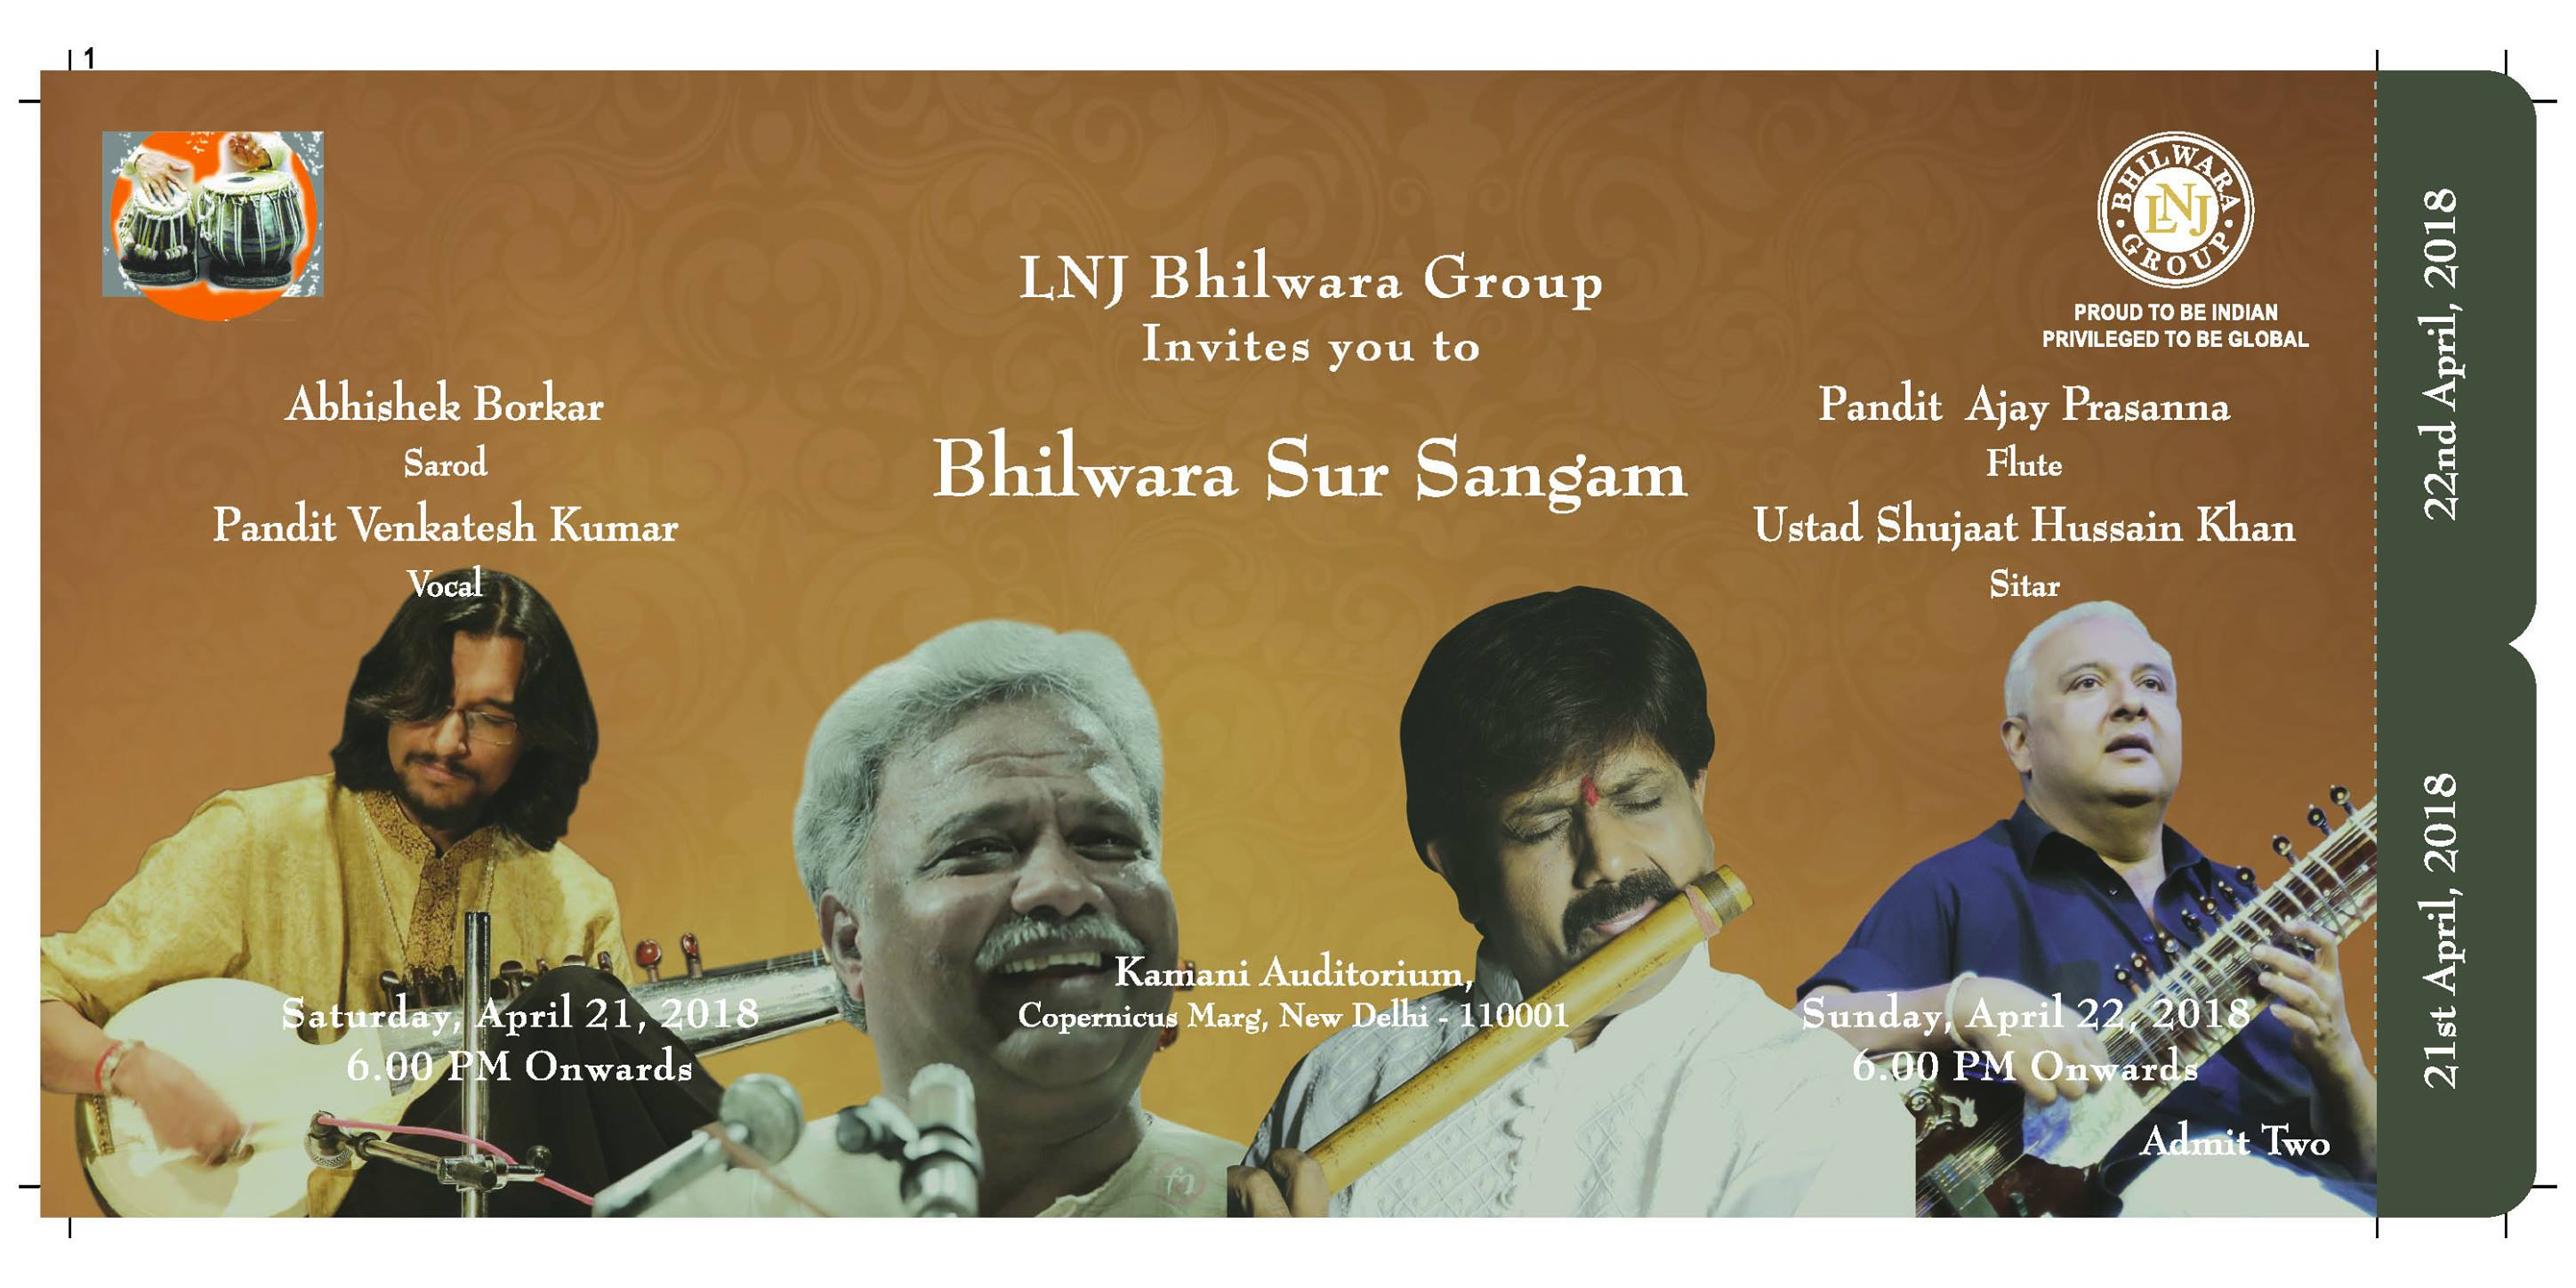 7th Edition of Bhilwara Sur Sangam